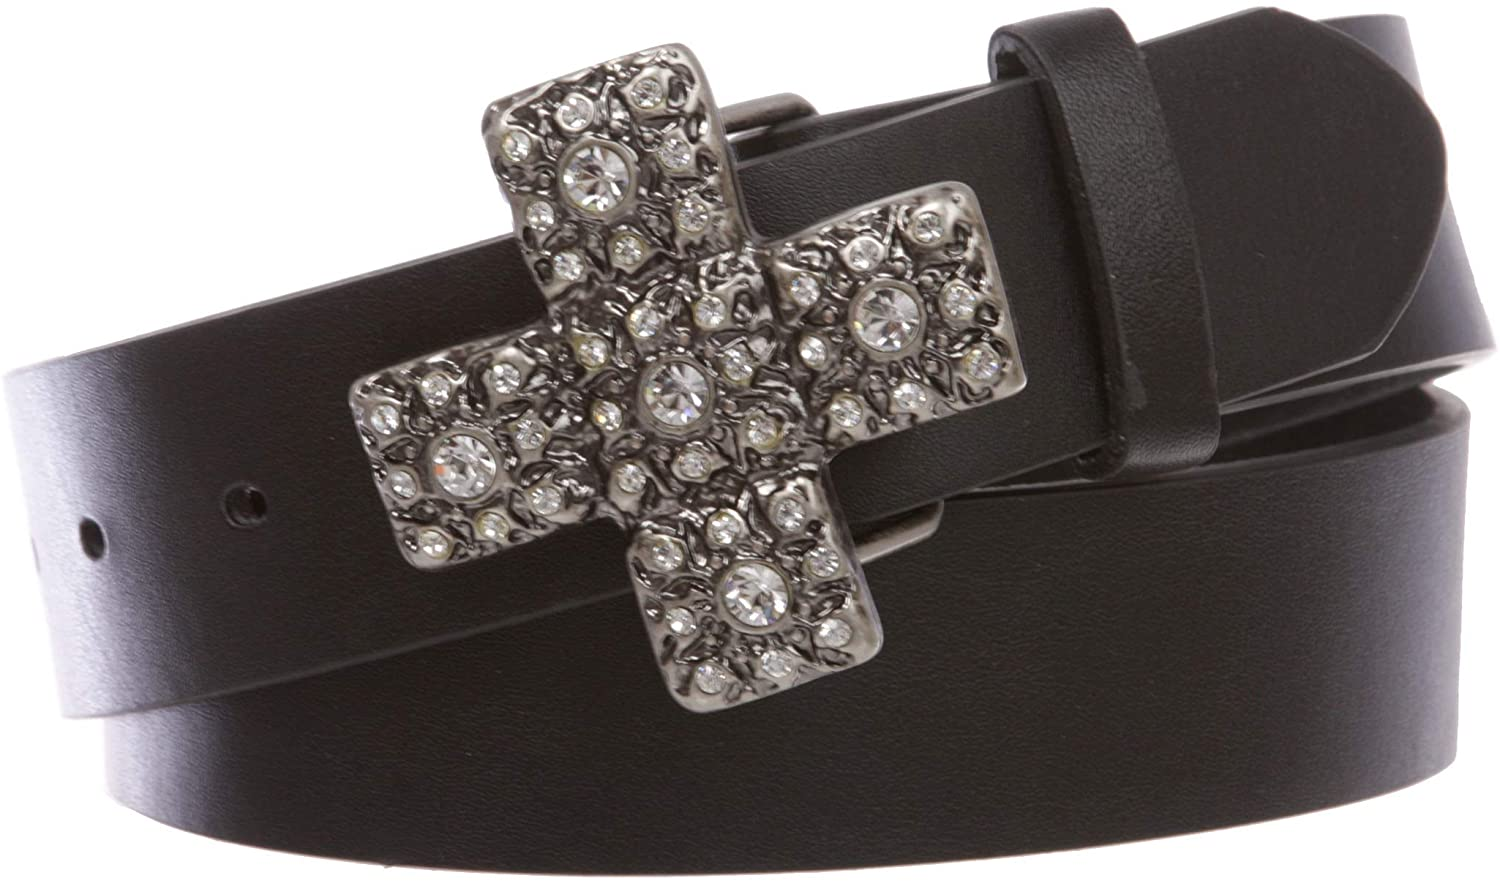 1 1/2 Snap On Cross Rhinestone Western Engraving Buckle With Leather Belt